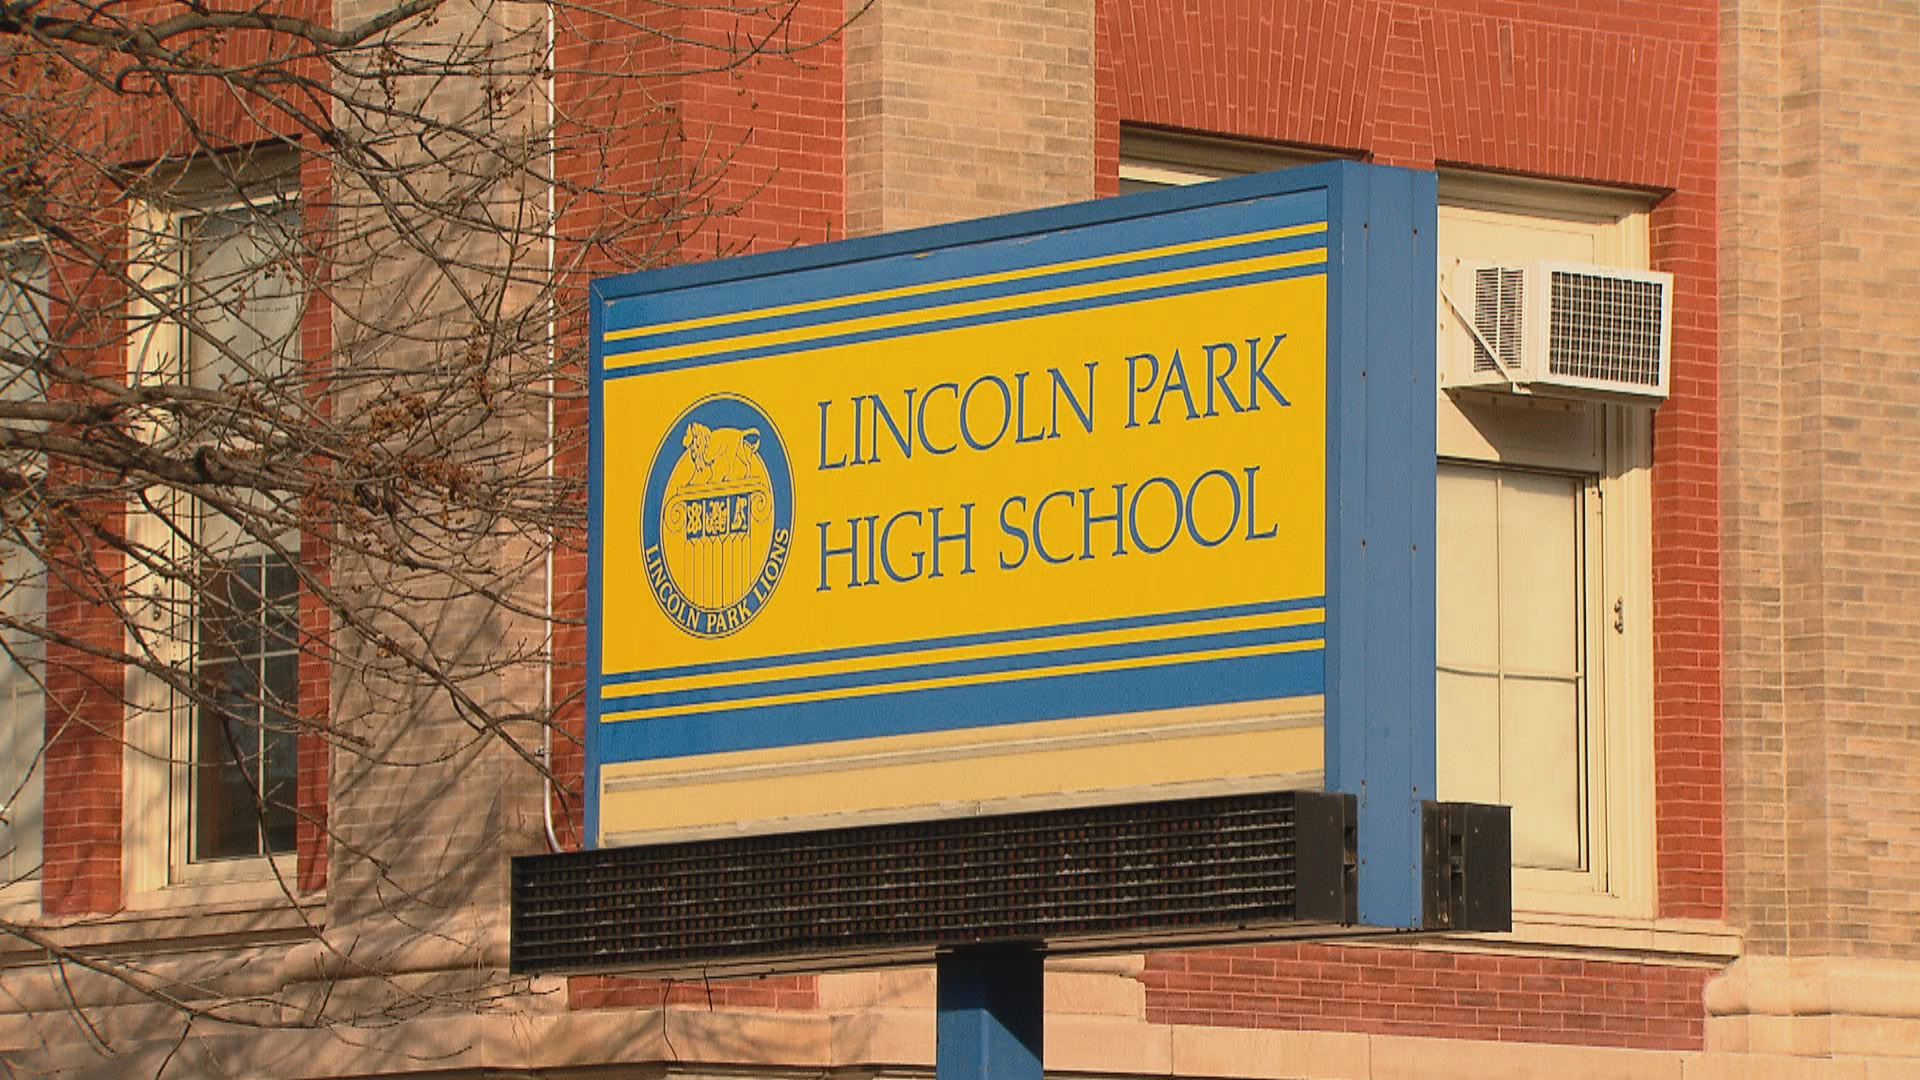 Lincoln Park High School (WTTW News)